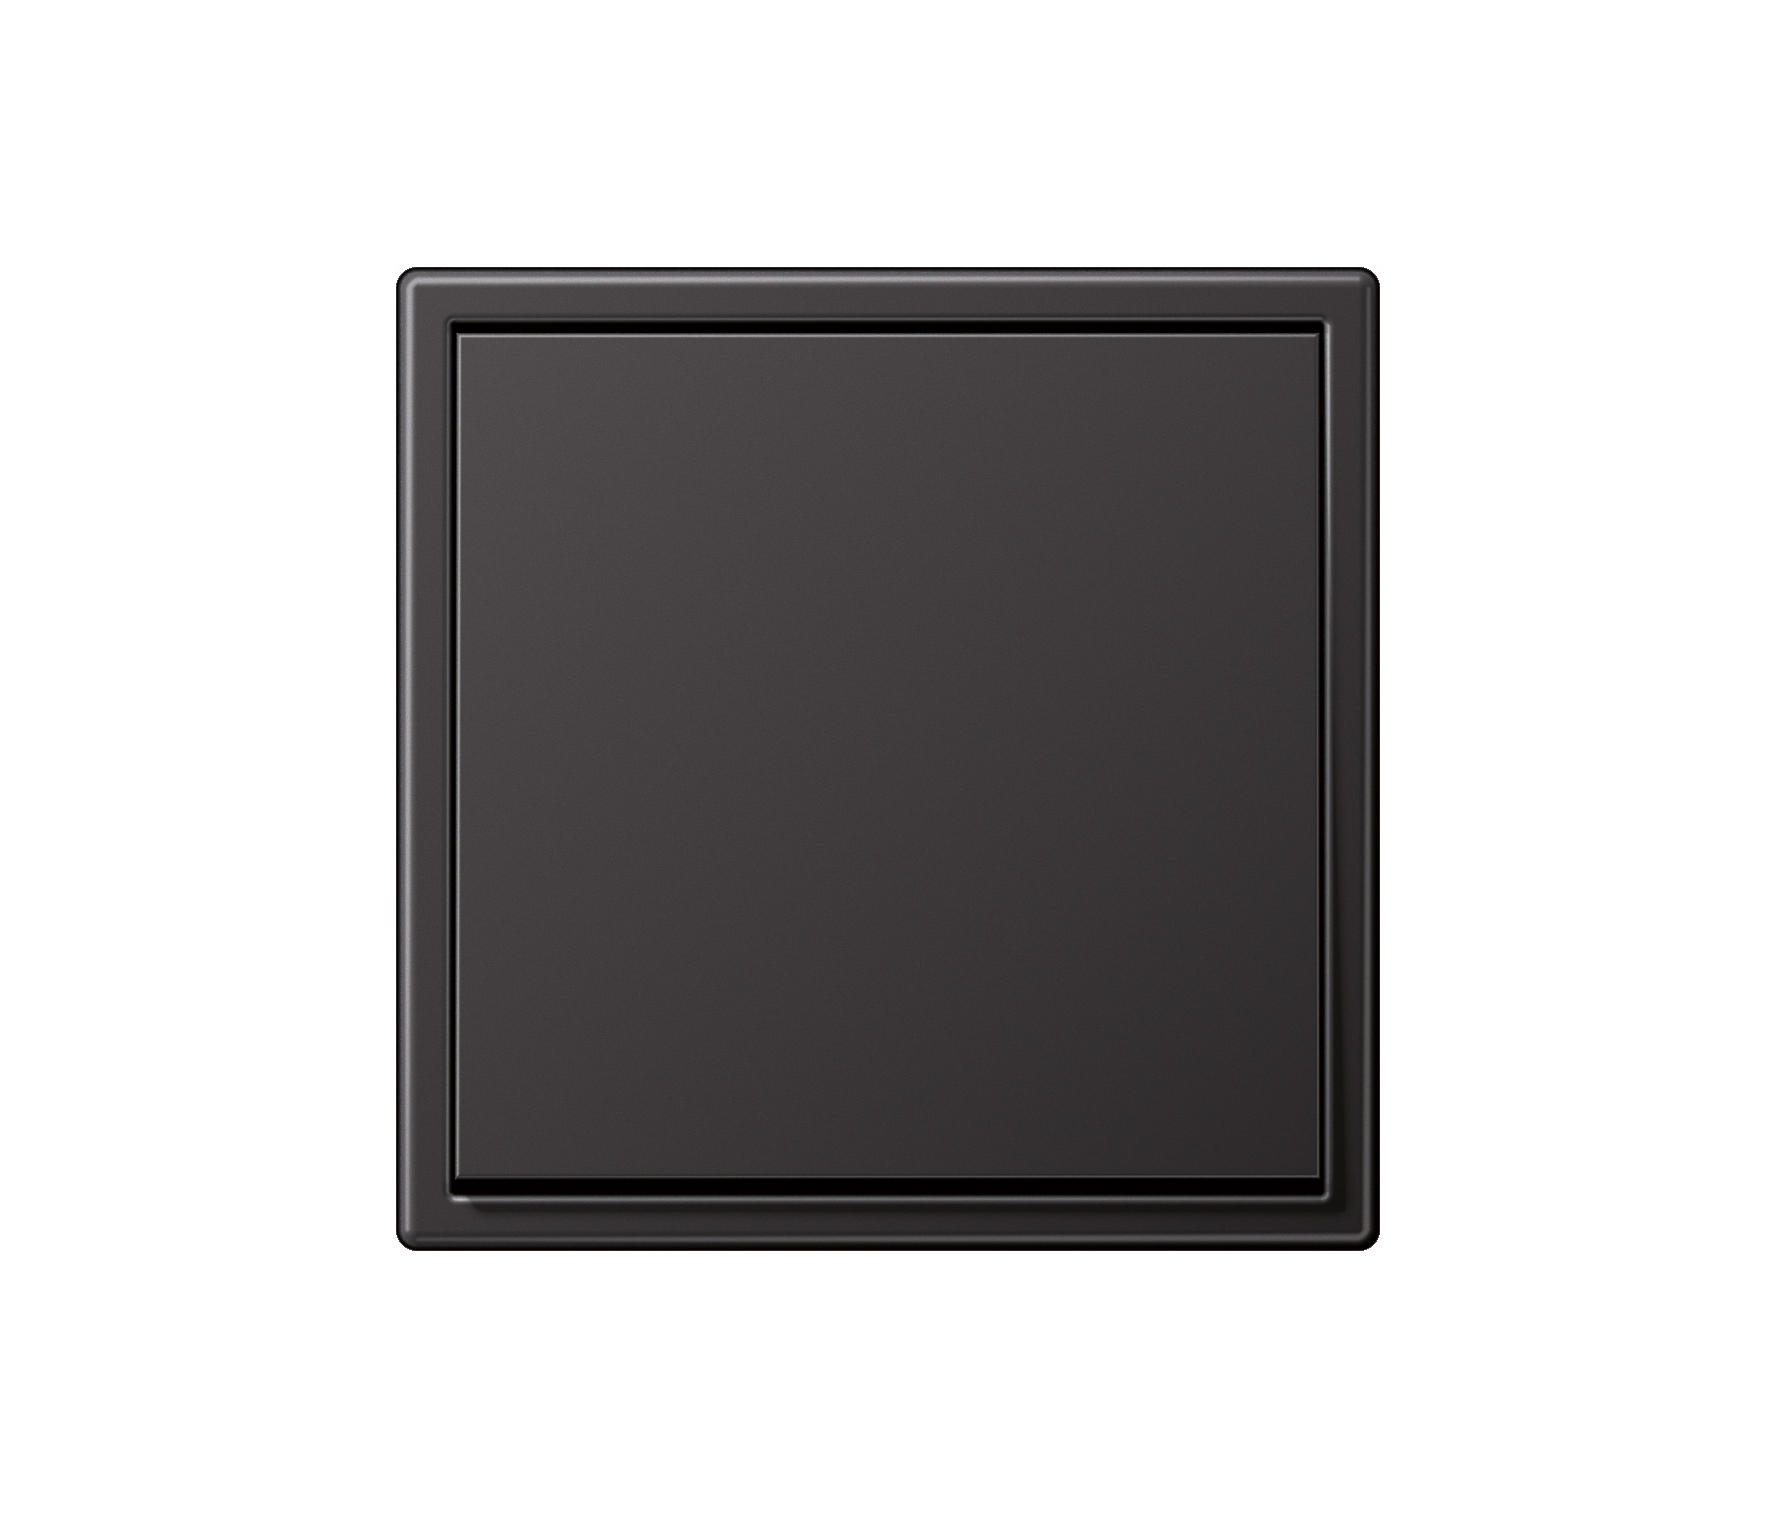 ls 990 aluminum dark switch two way switches from jung. Black Bedroom Furniture Sets. Home Design Ideas